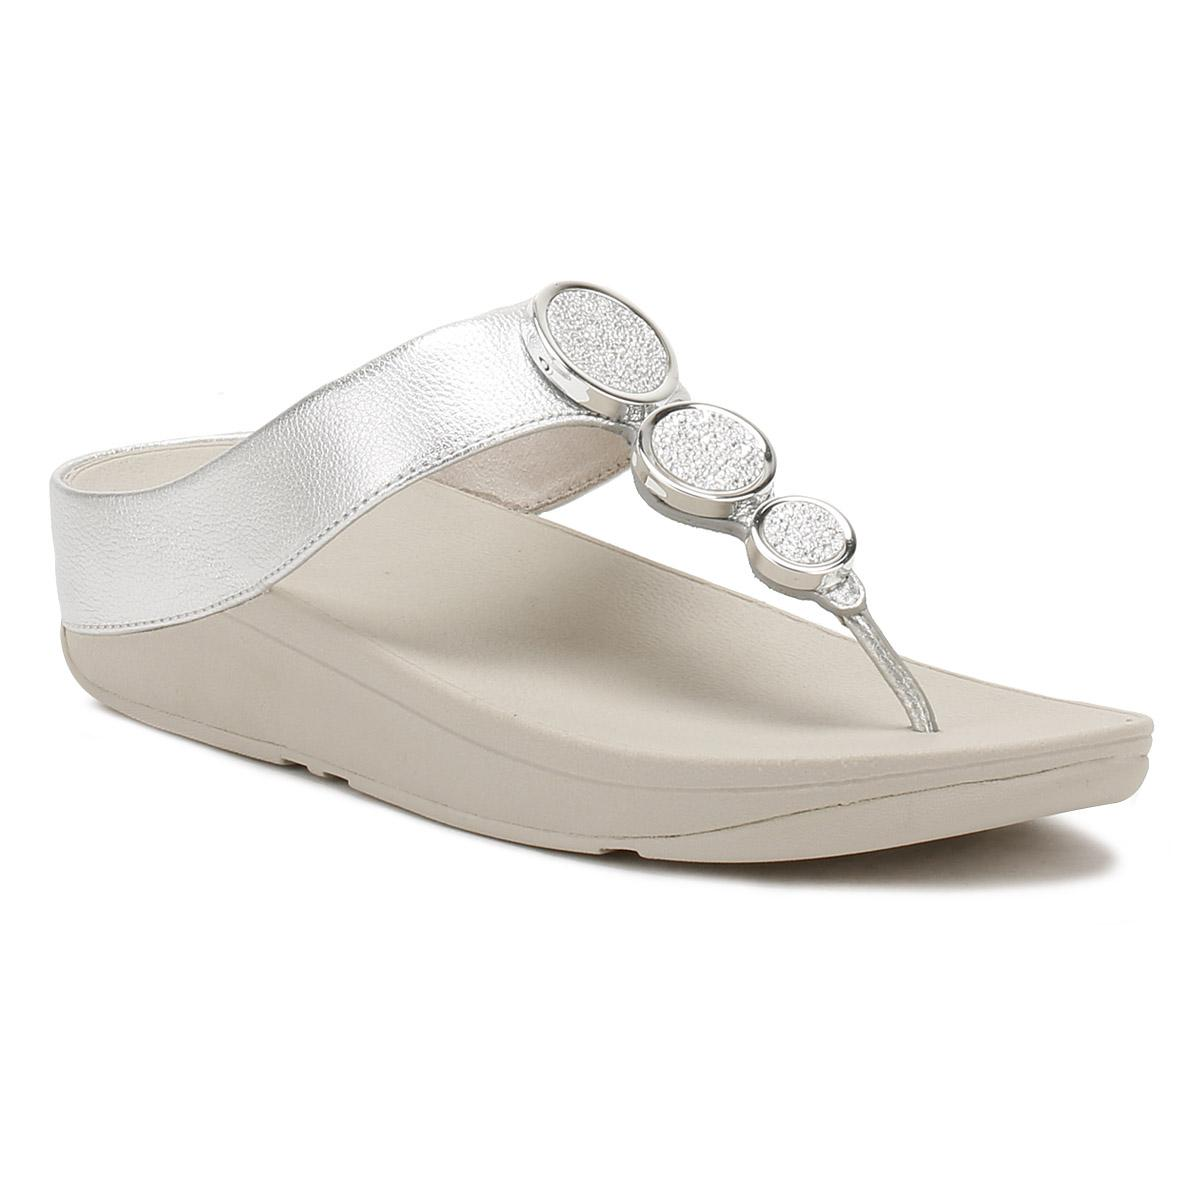 ad9cd38d2dd Lyst - Fitflop Womens Silver Halo Toe Thong Sandals in Metallic